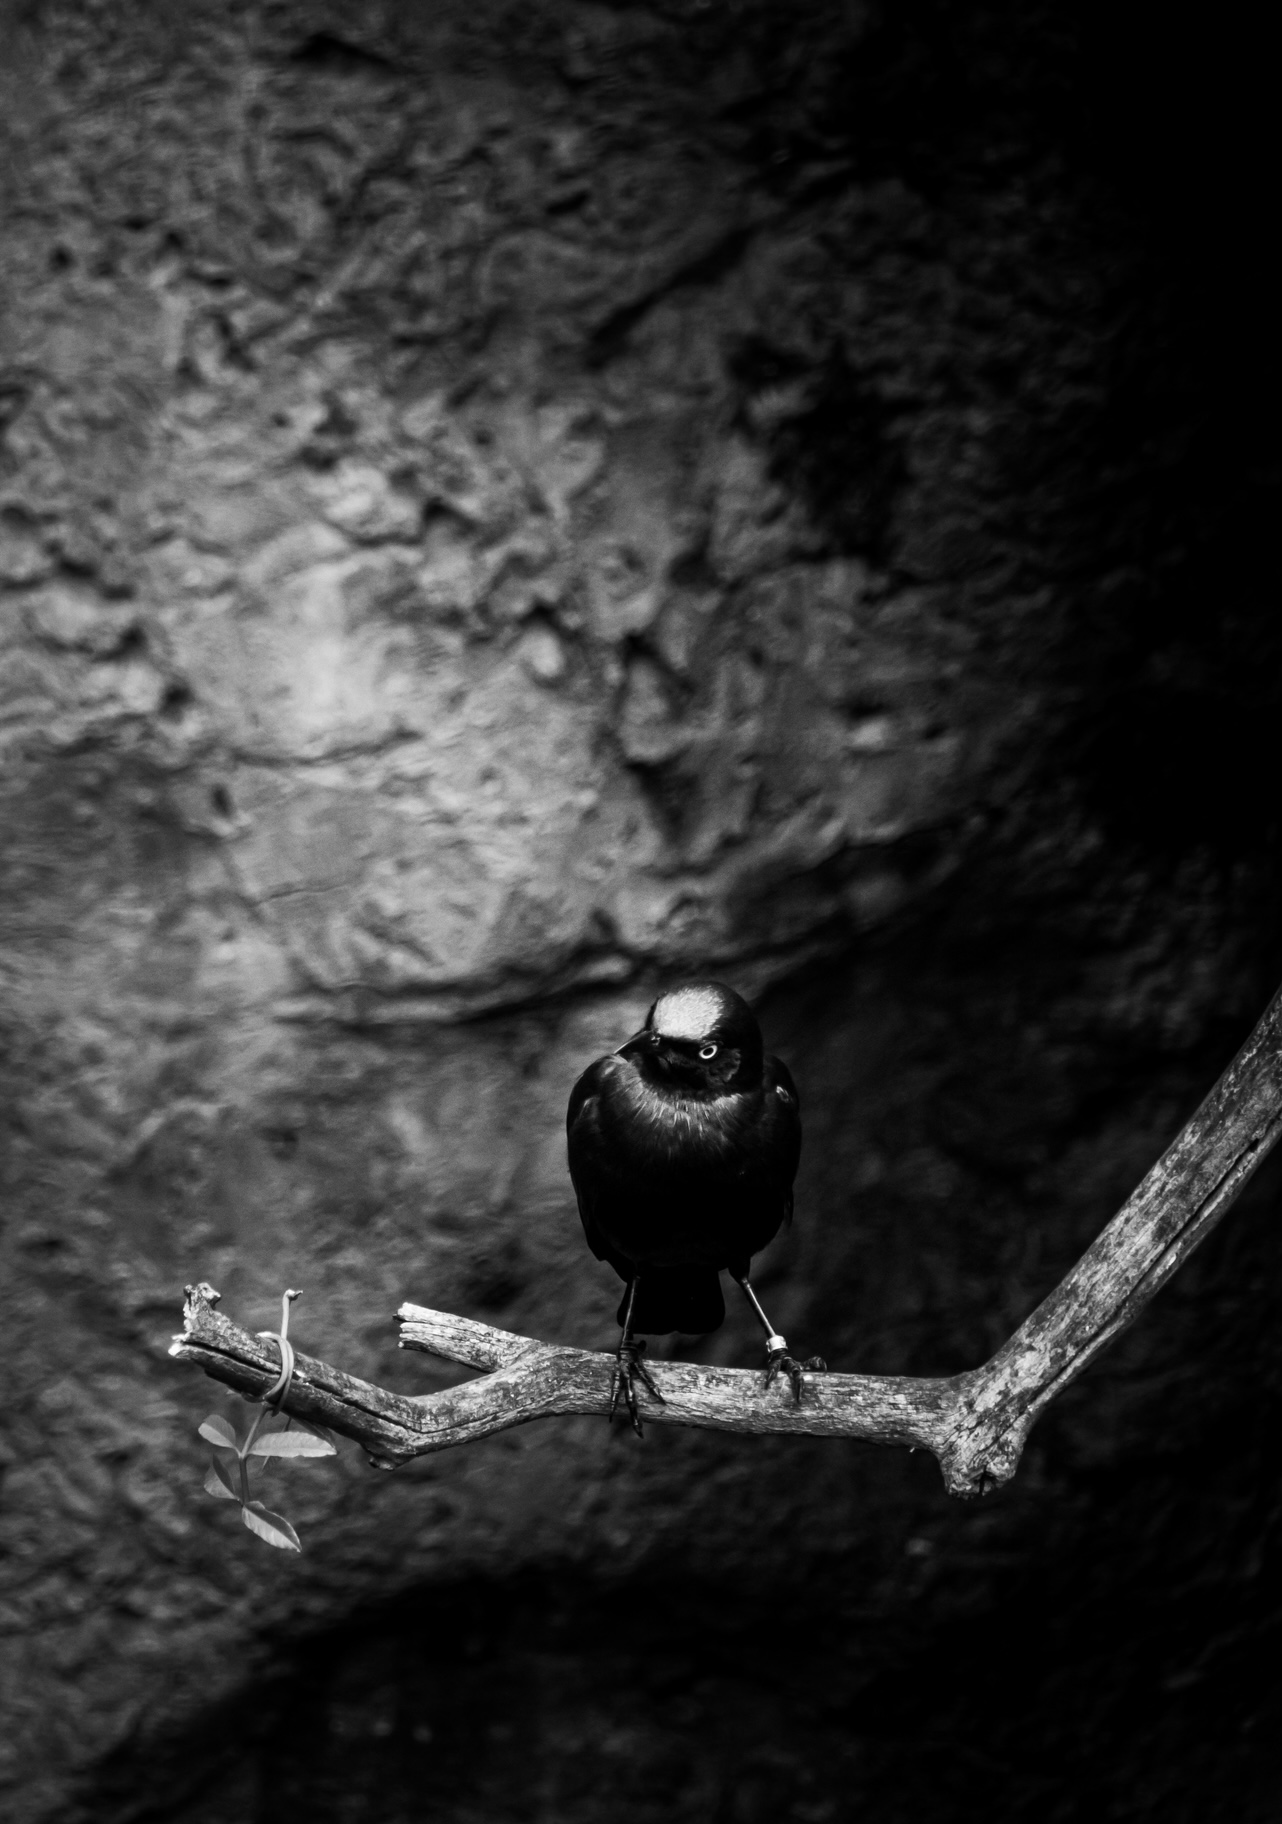 Black and white photo of a bird